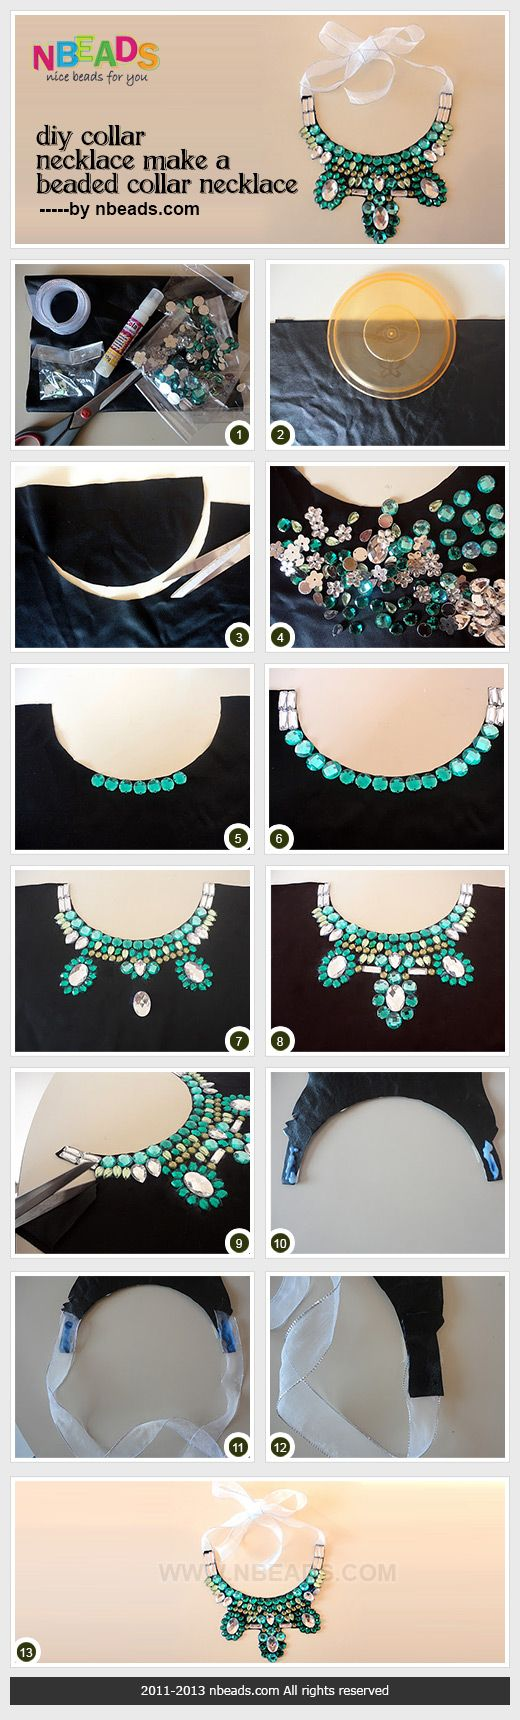 diy collar necklace - make a beaded collar necklace